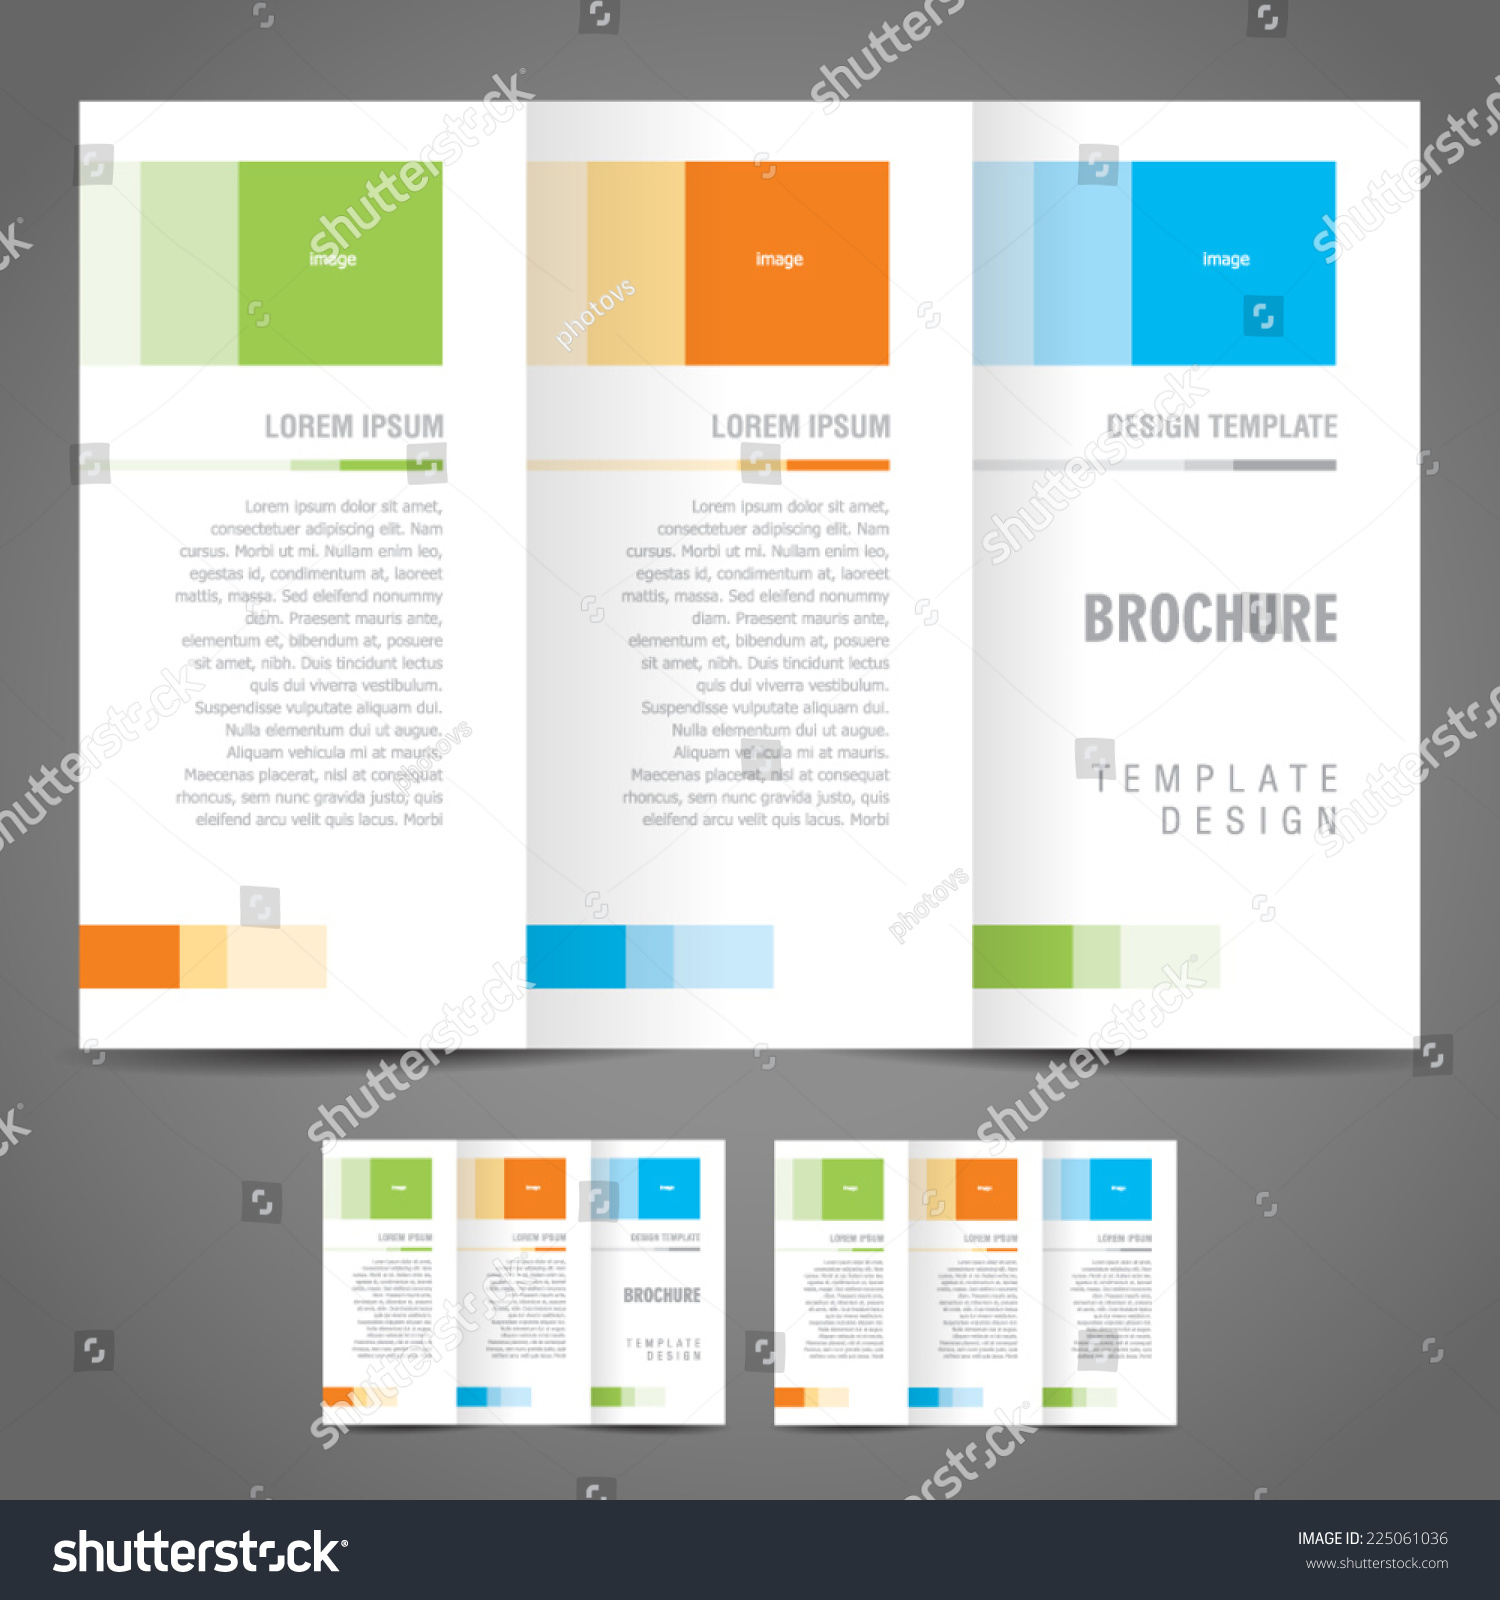 Simple brochure design template trifold stock vector for Basic brochure template